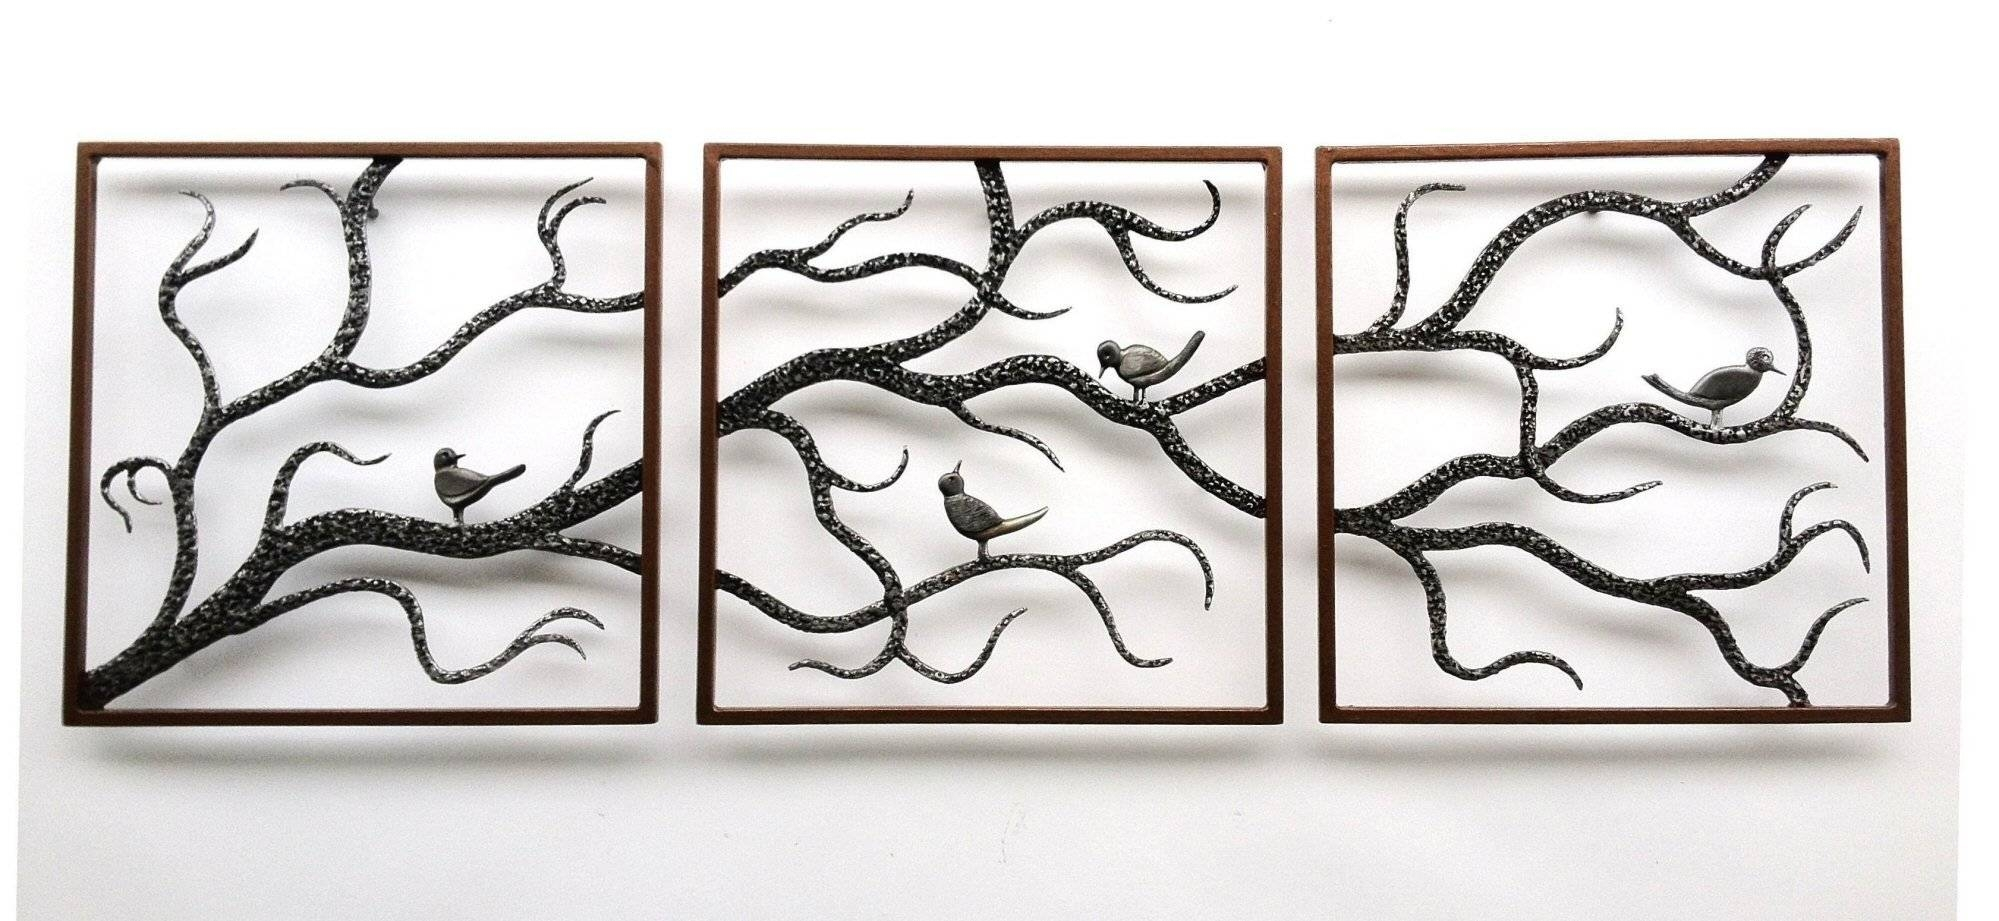 Wall Art Designs: Metal Wall Art Trees Birch Three Framed Cute Pertaining To Current Metal Wall Art Trees And Branches (View 15 of 18)